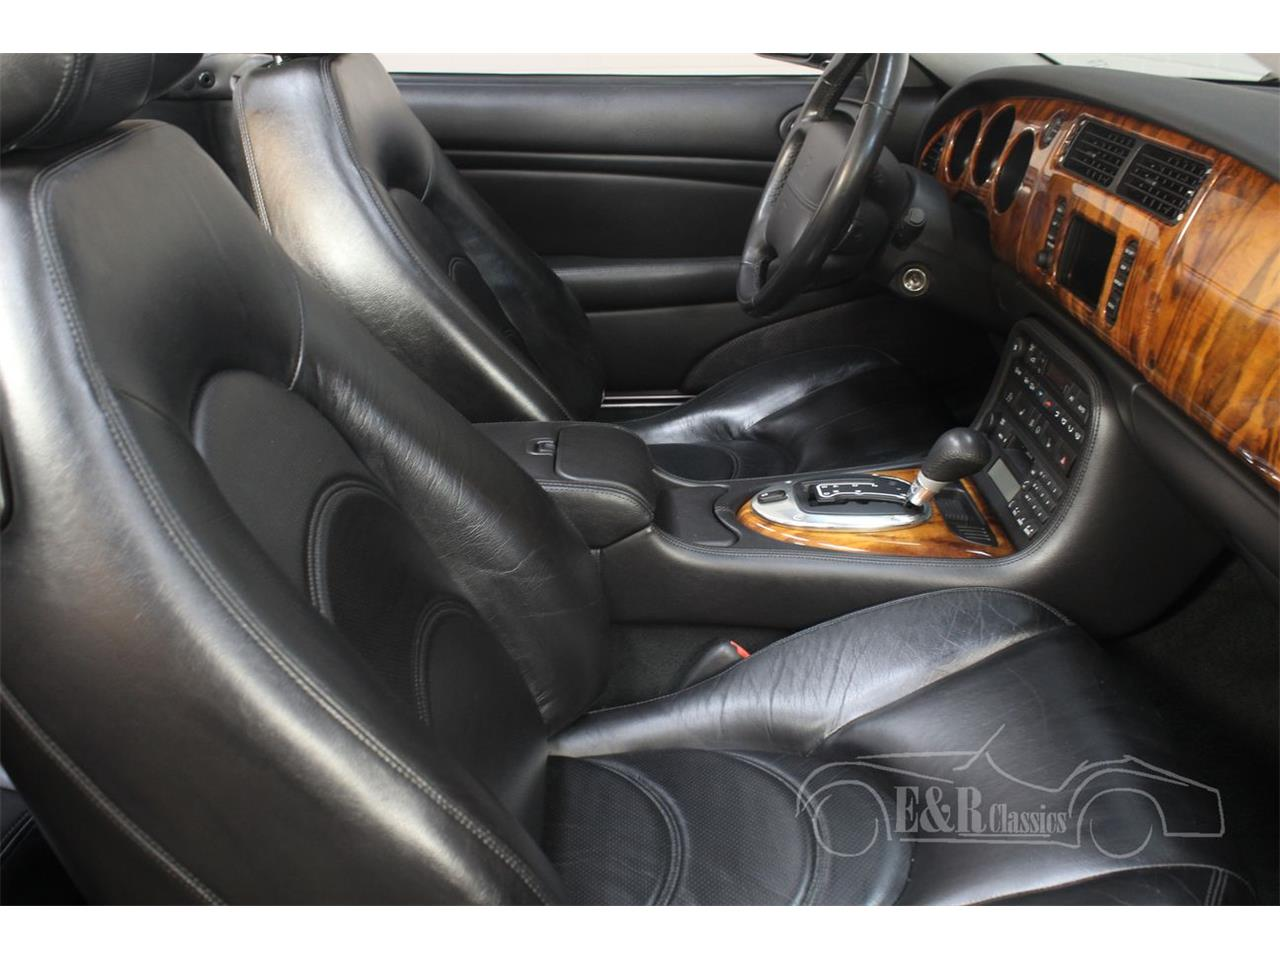 Large Picture of '03 XKR - $39,200.00 Offered by E & R Classics - Q3GE